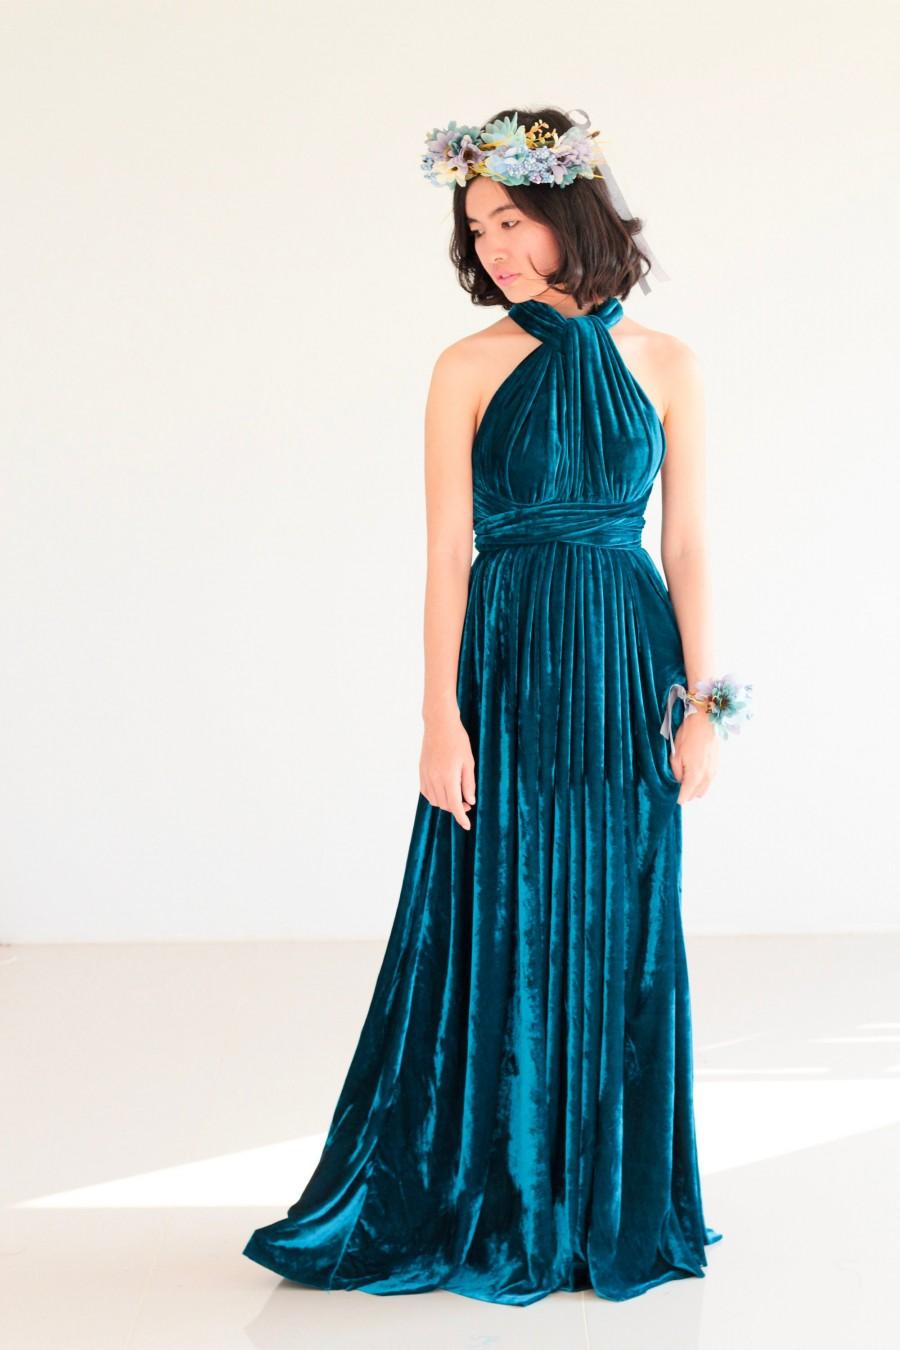 Wedding - Teal Blue Velvet Bridesmaid Dress maternity infinity Dress Prom Dress Convertible Dress Wrap Dress